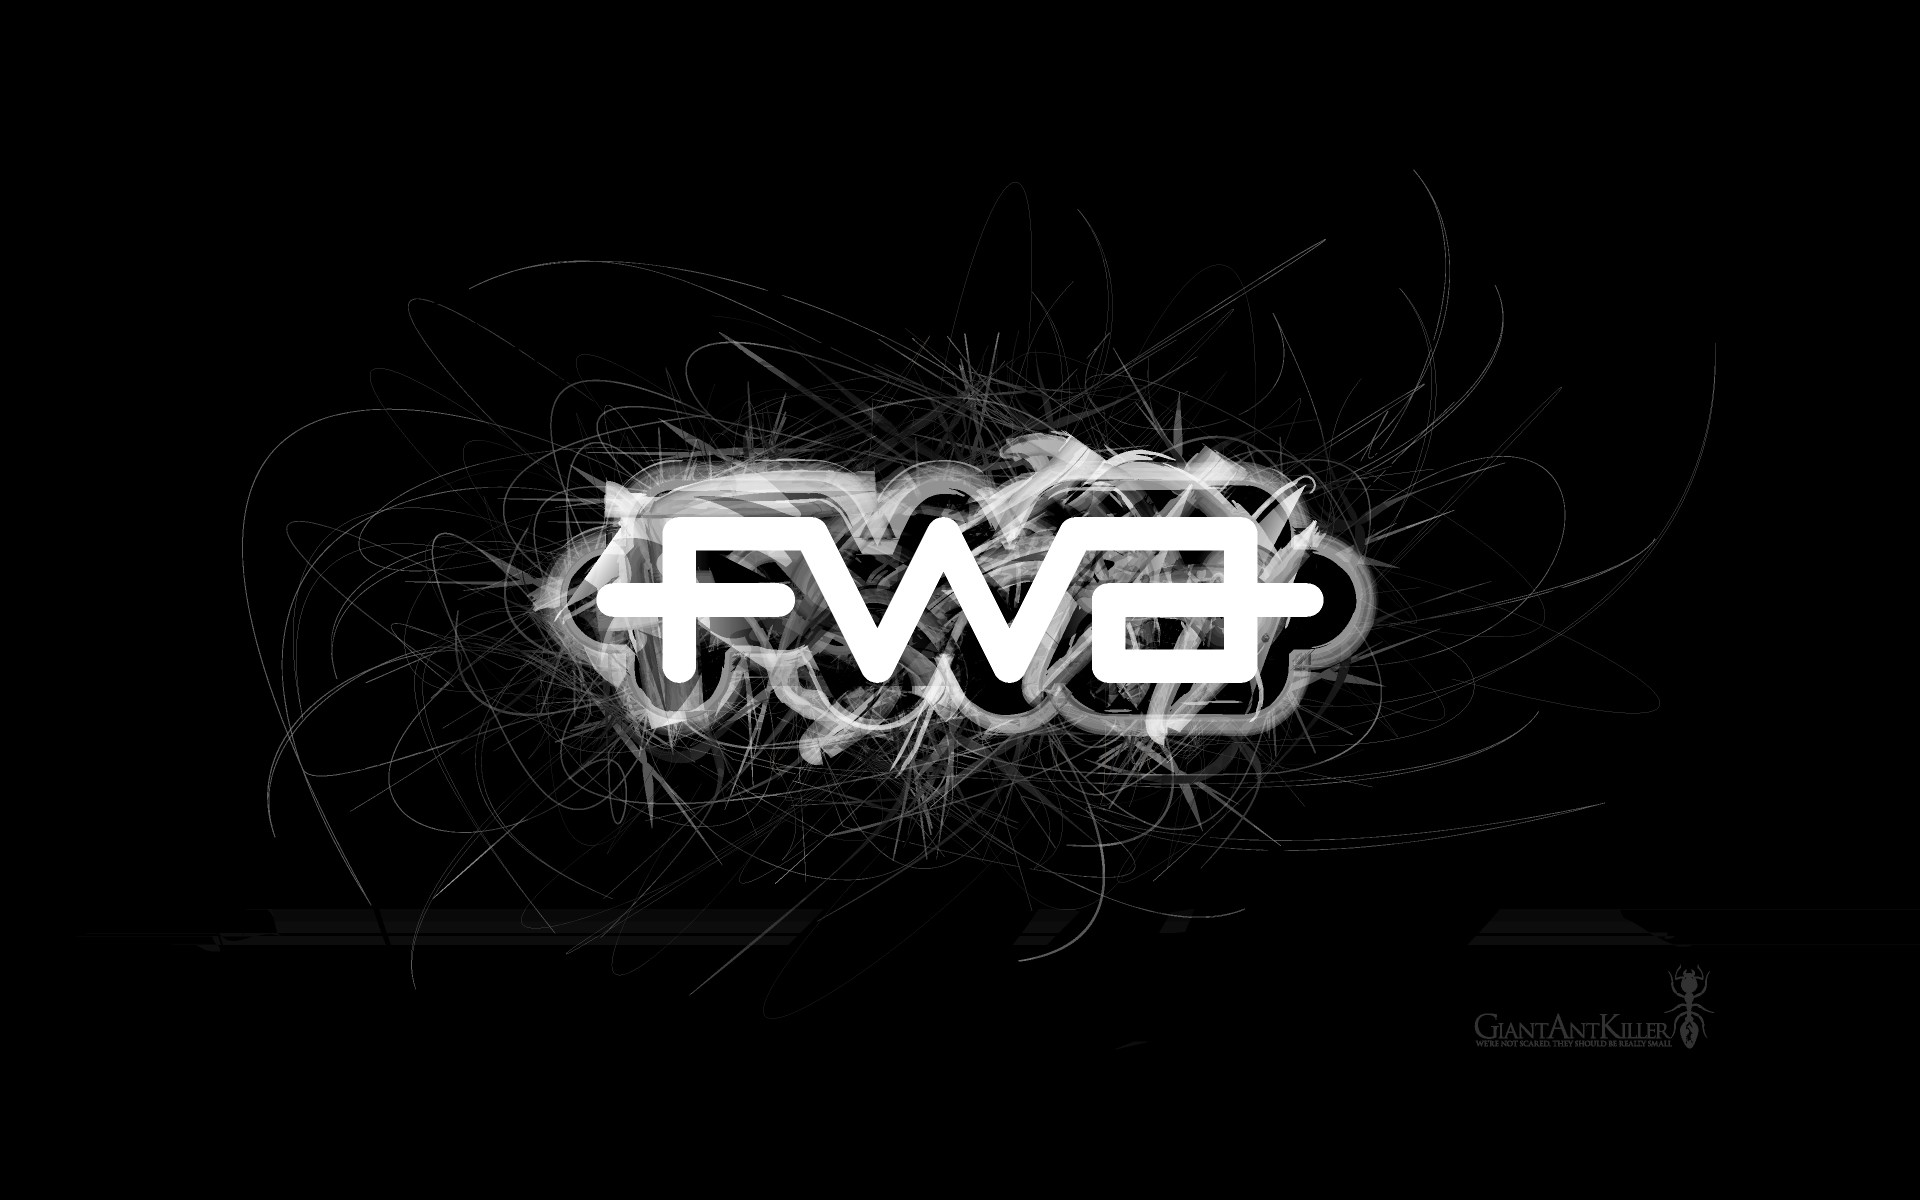 3D Black And White Fwa Wide